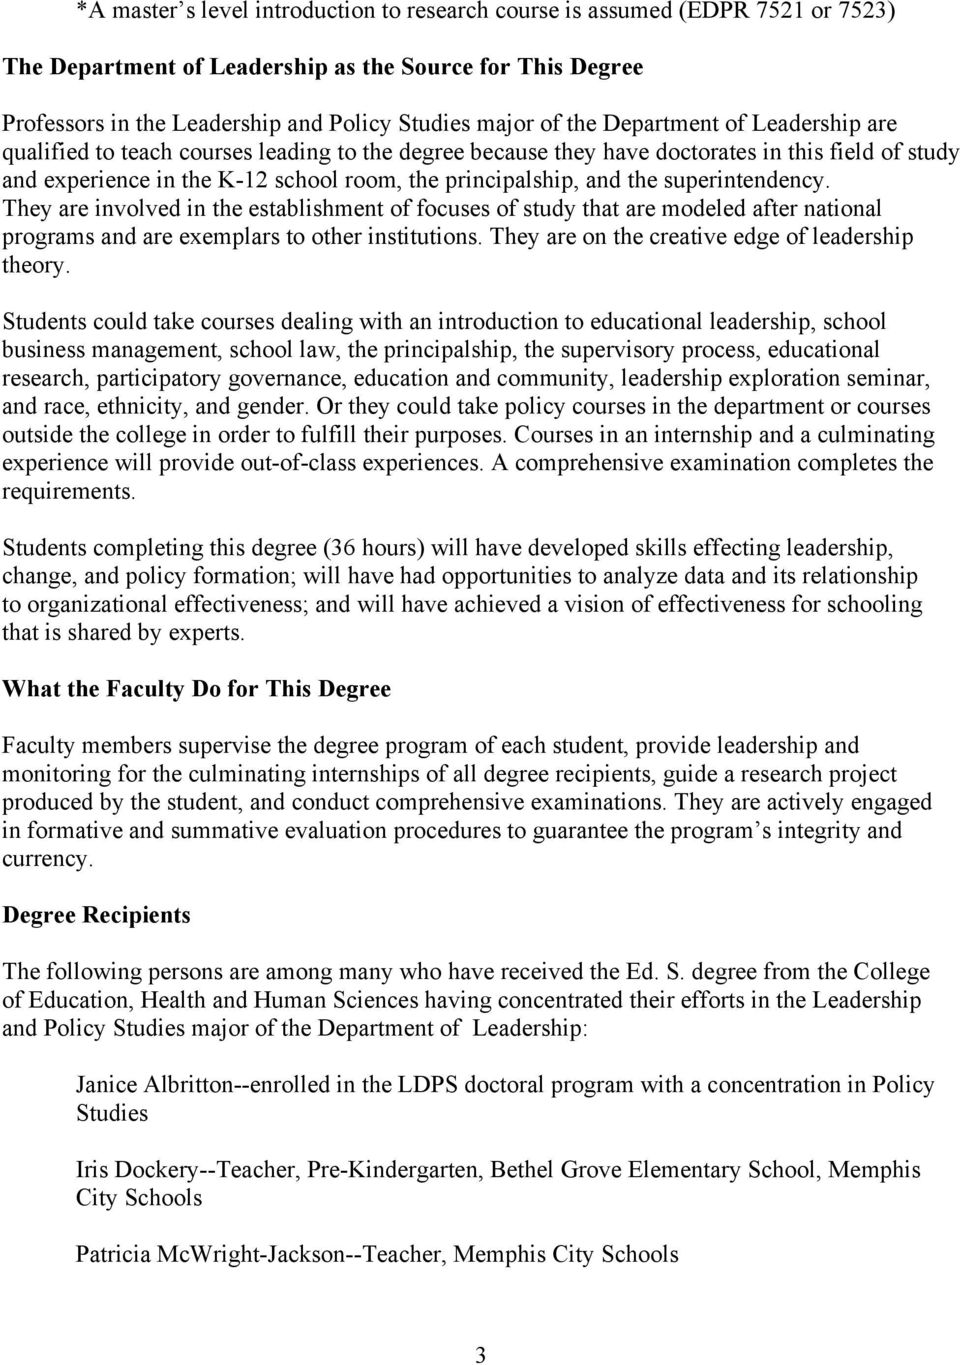 the superintendency. They are involved in the establishment of focuses of study that are modeled after national programs and are exemplars to other institutions.